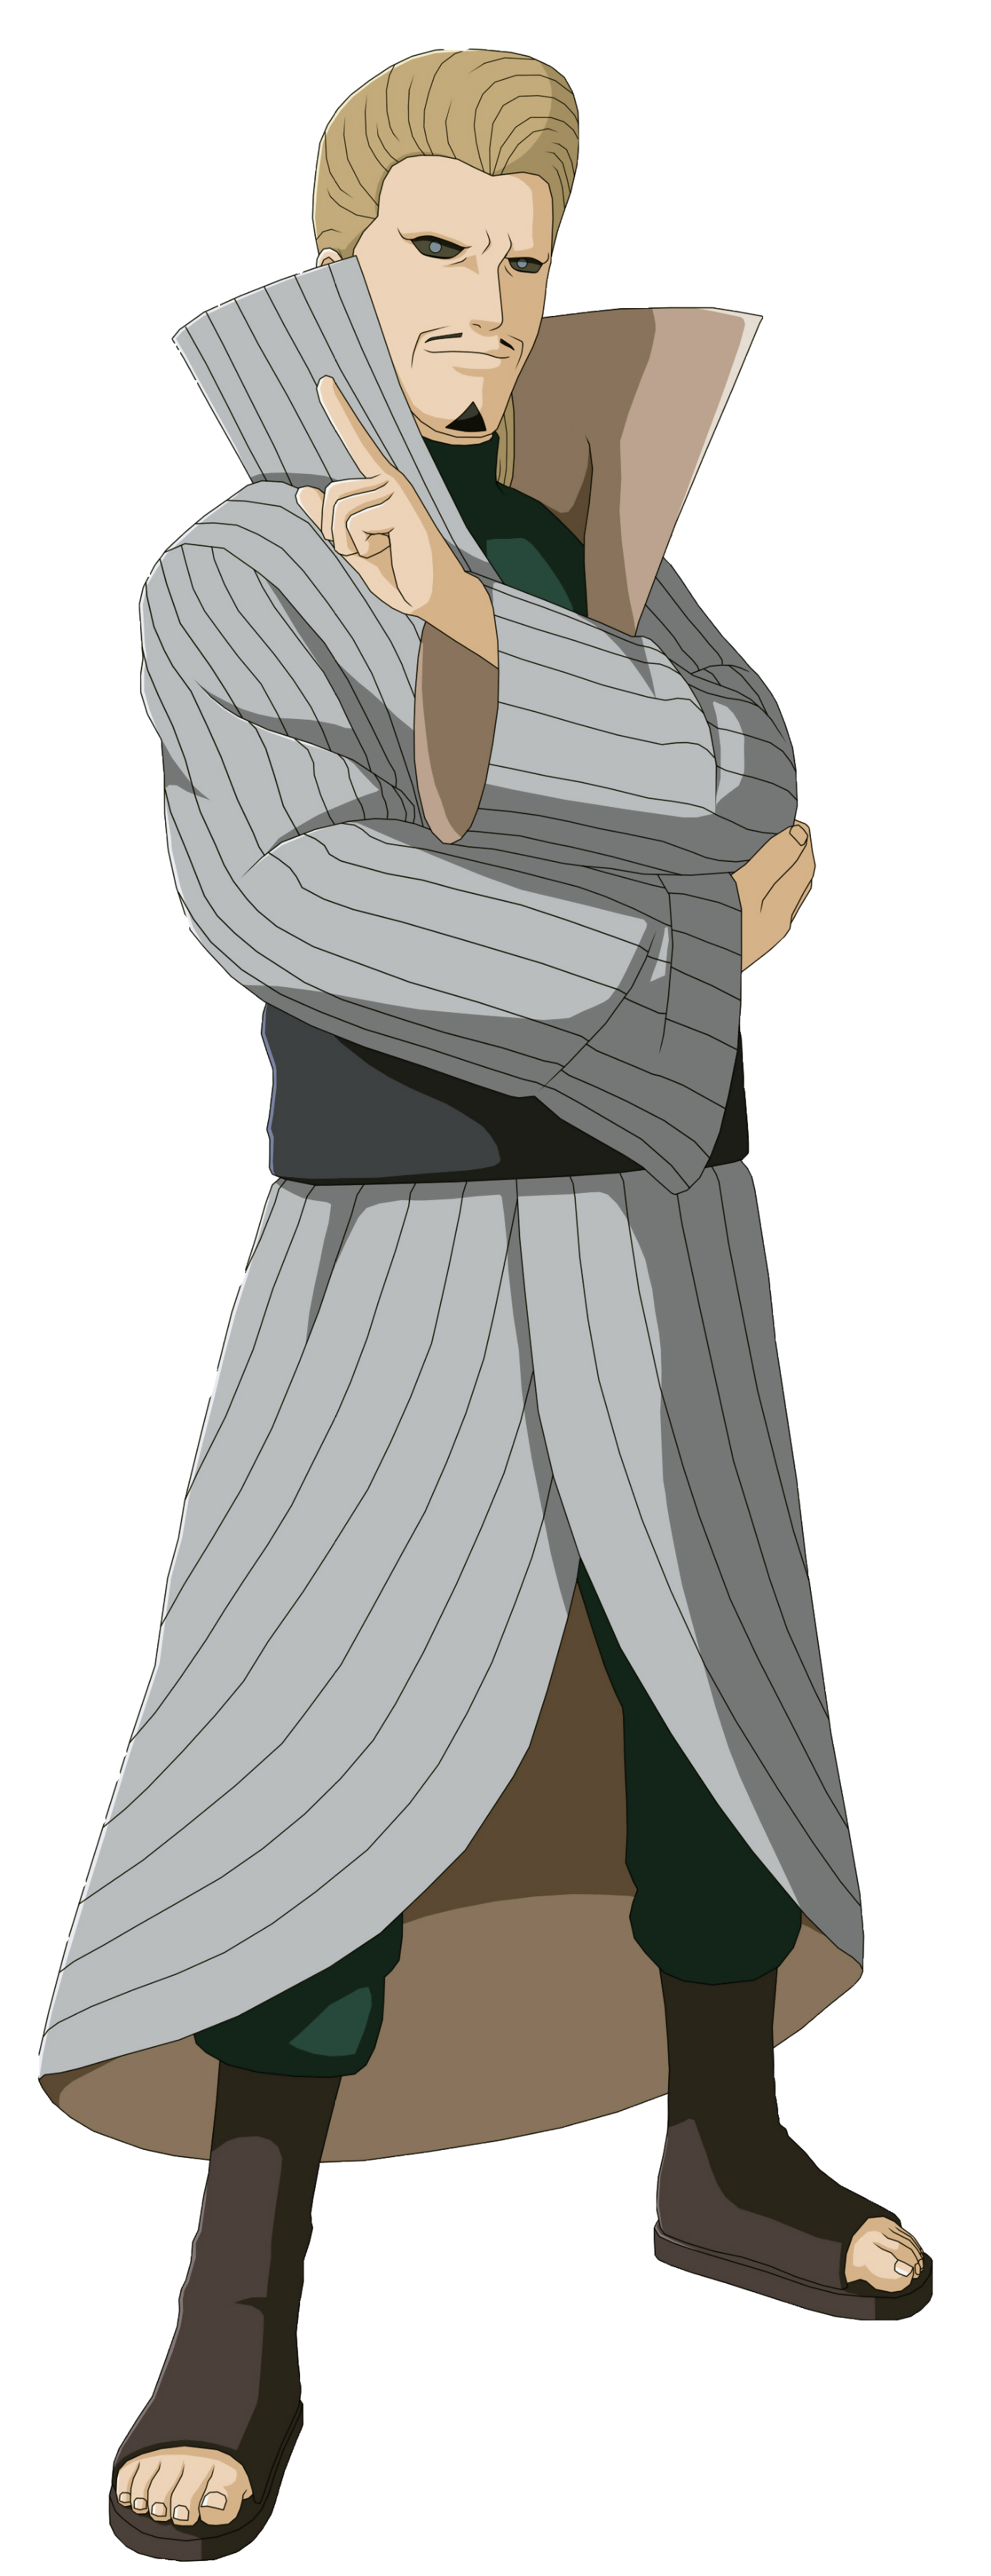 The Second Booke Of The Kings Commonly Called The Fourth: Narutopedia, The Naruto Encyclopedia Wiki